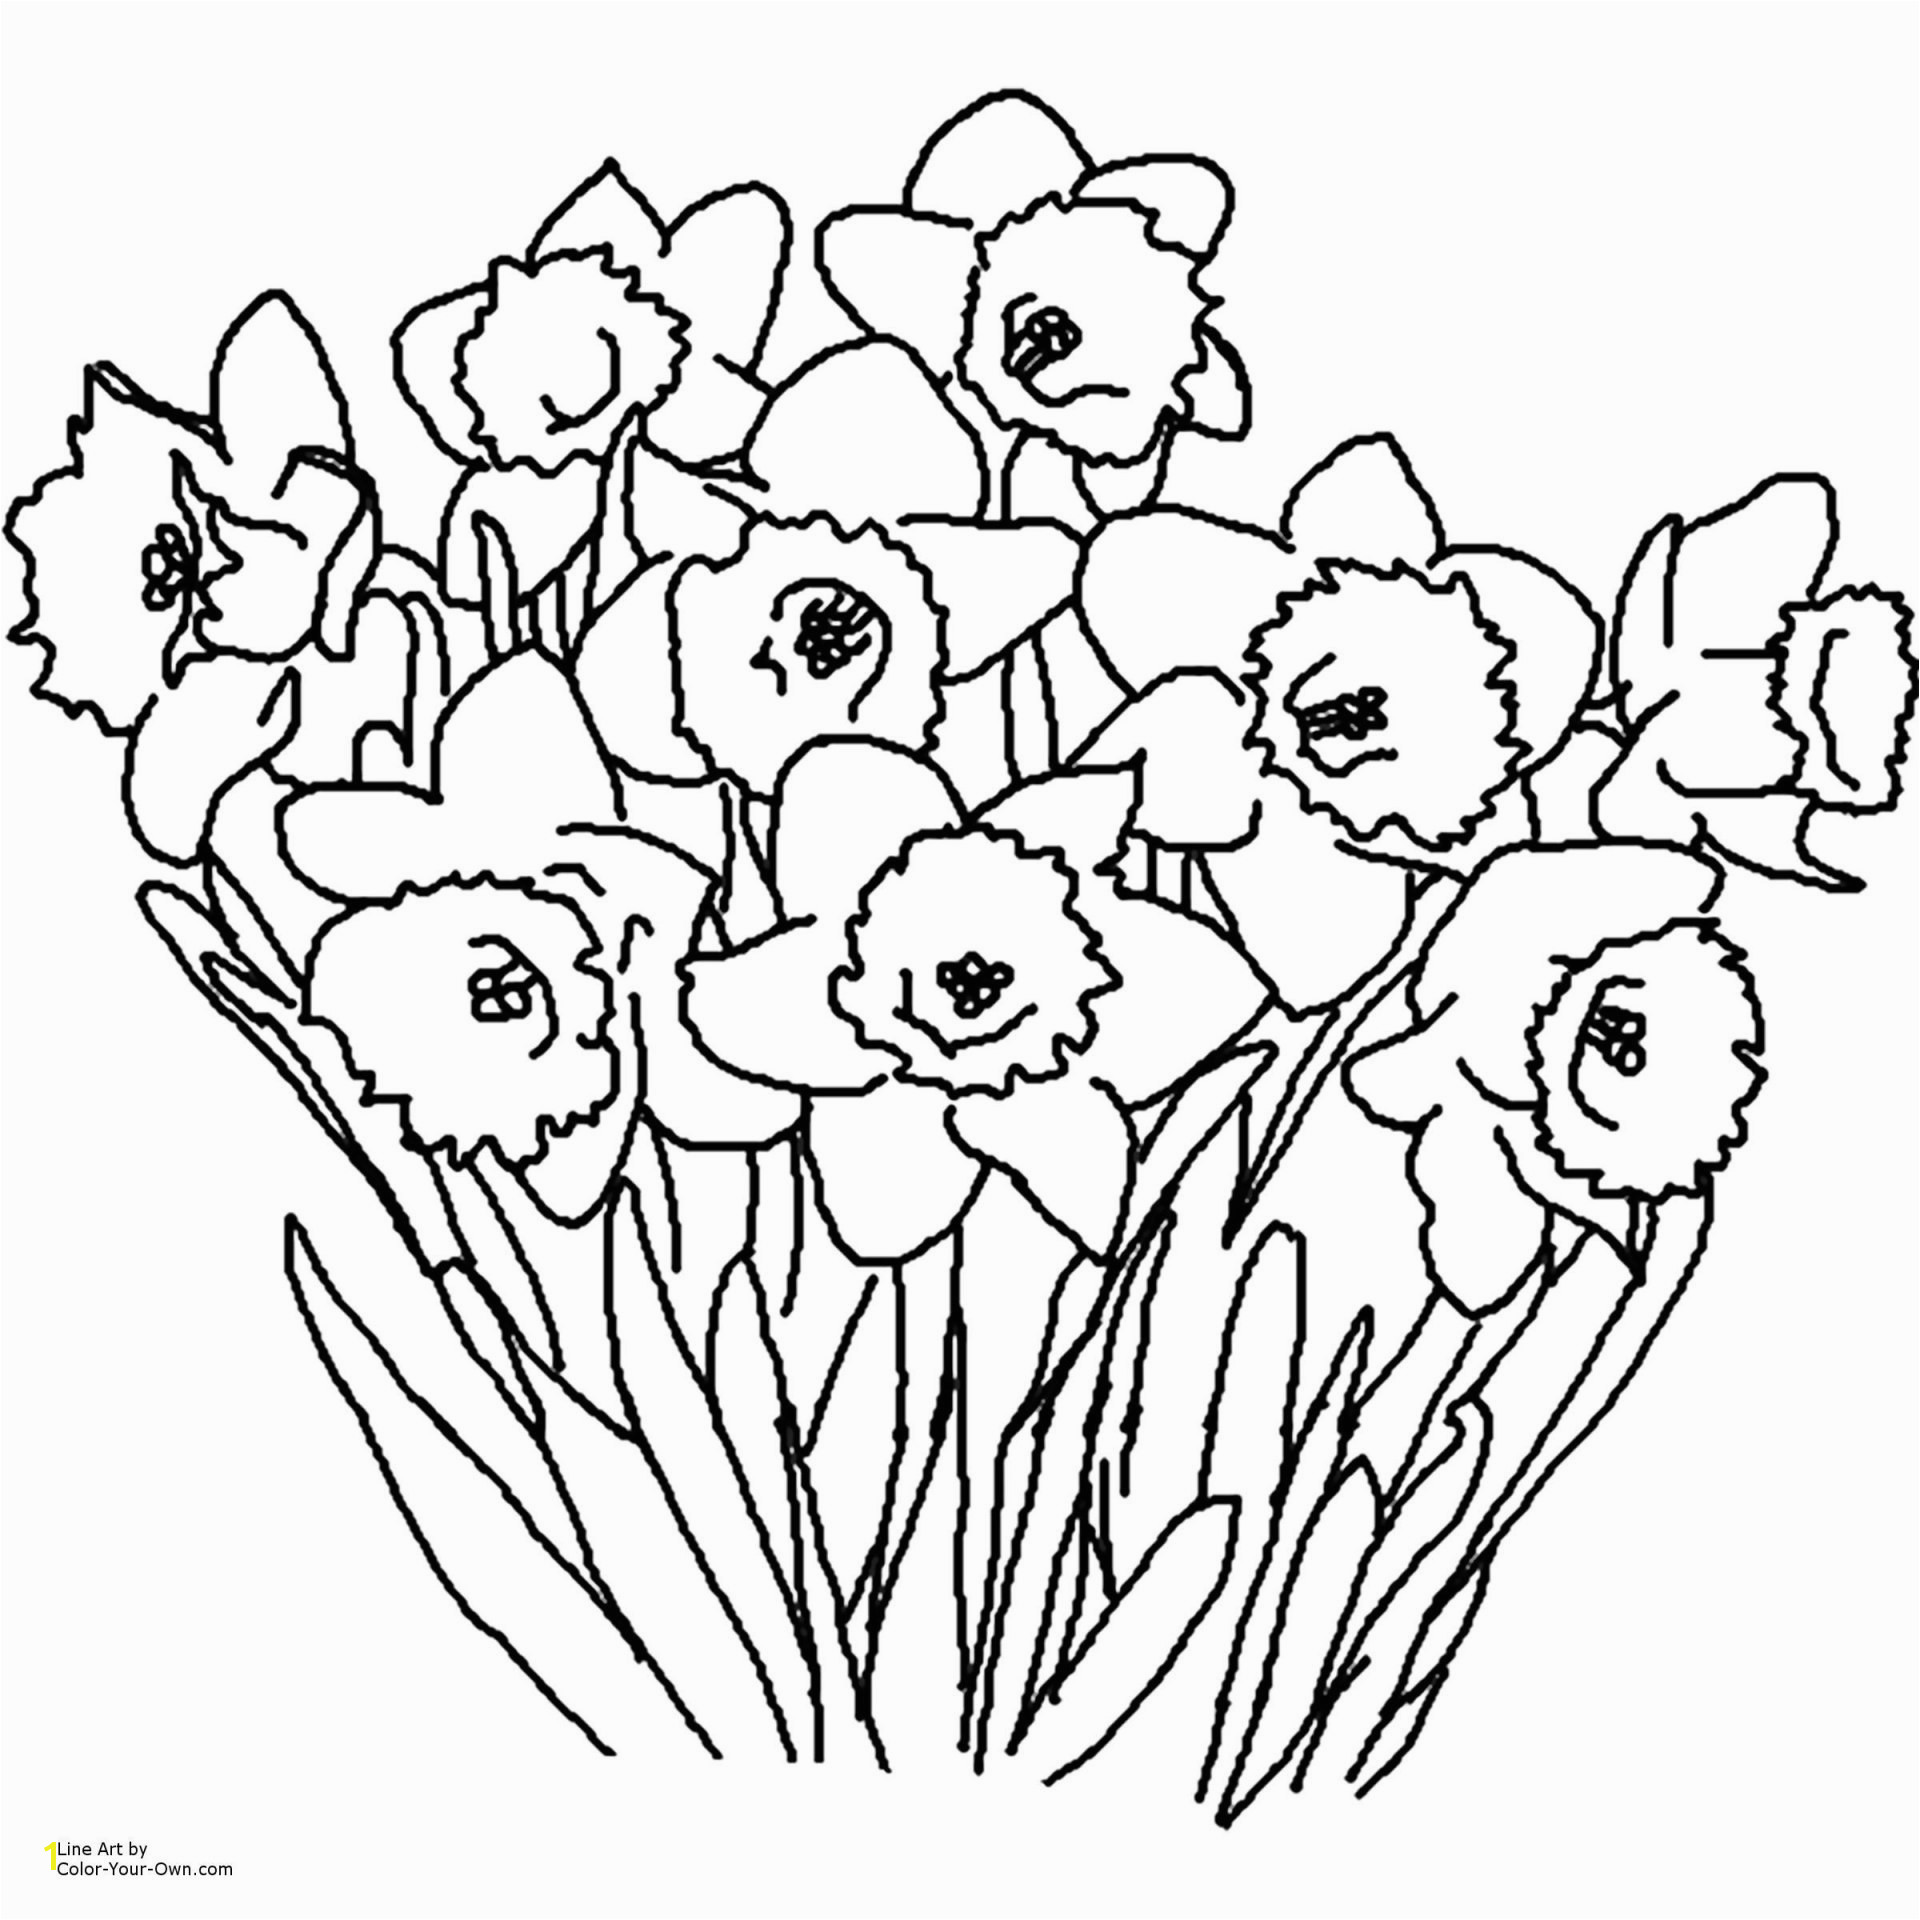 Free Printable Flower Coloring Pages Best Free Printable Spring Flowers Coloring Pages Coloring Home